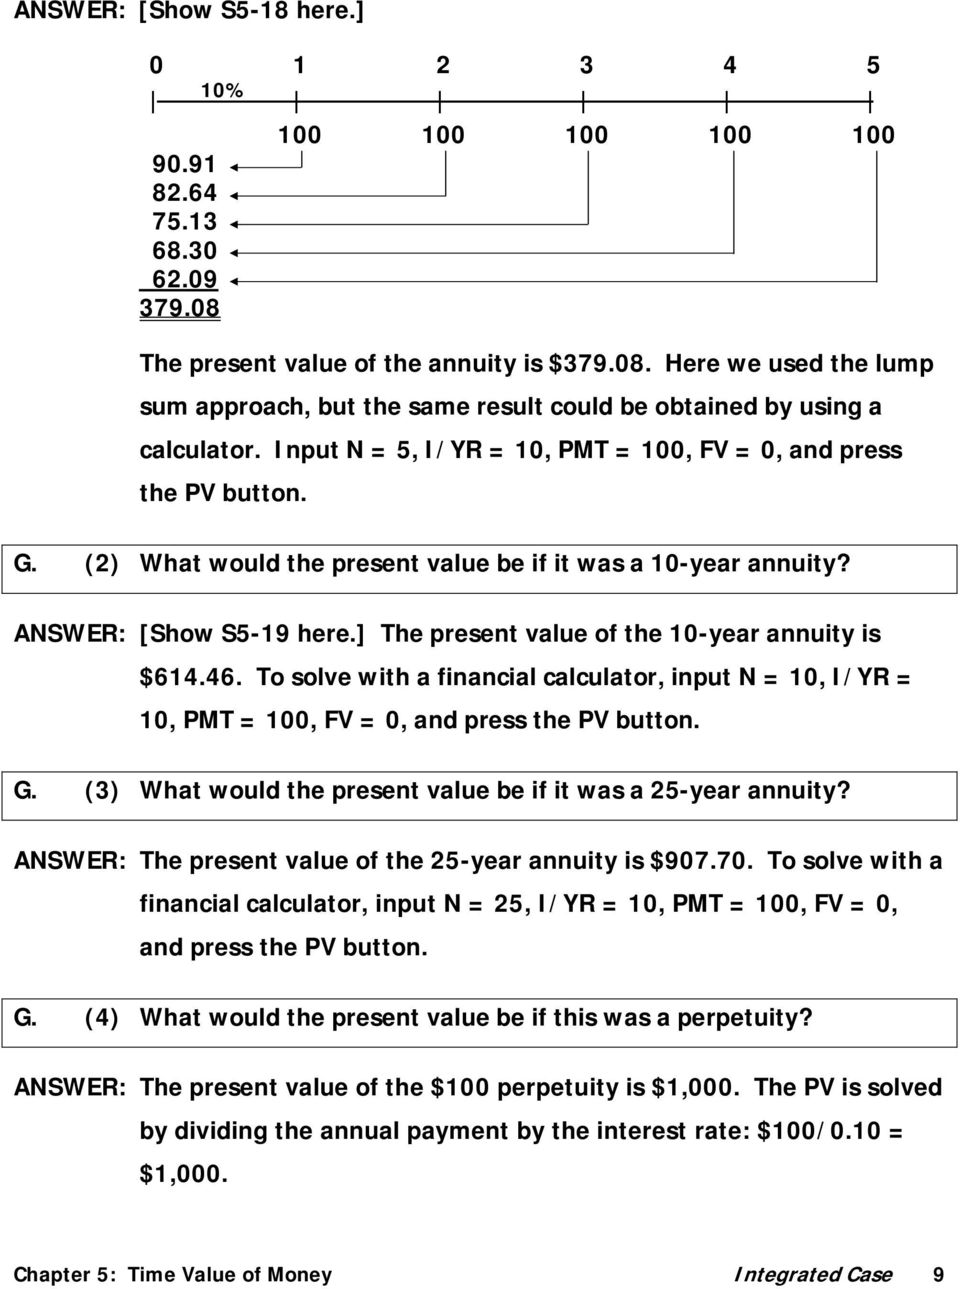 ] The present value of the 10-year annuity is $614.46. To solve with a financial calculator, input N = 10, I/YR = 10, PMT = 100, FV = 0, and press the PV button. G.